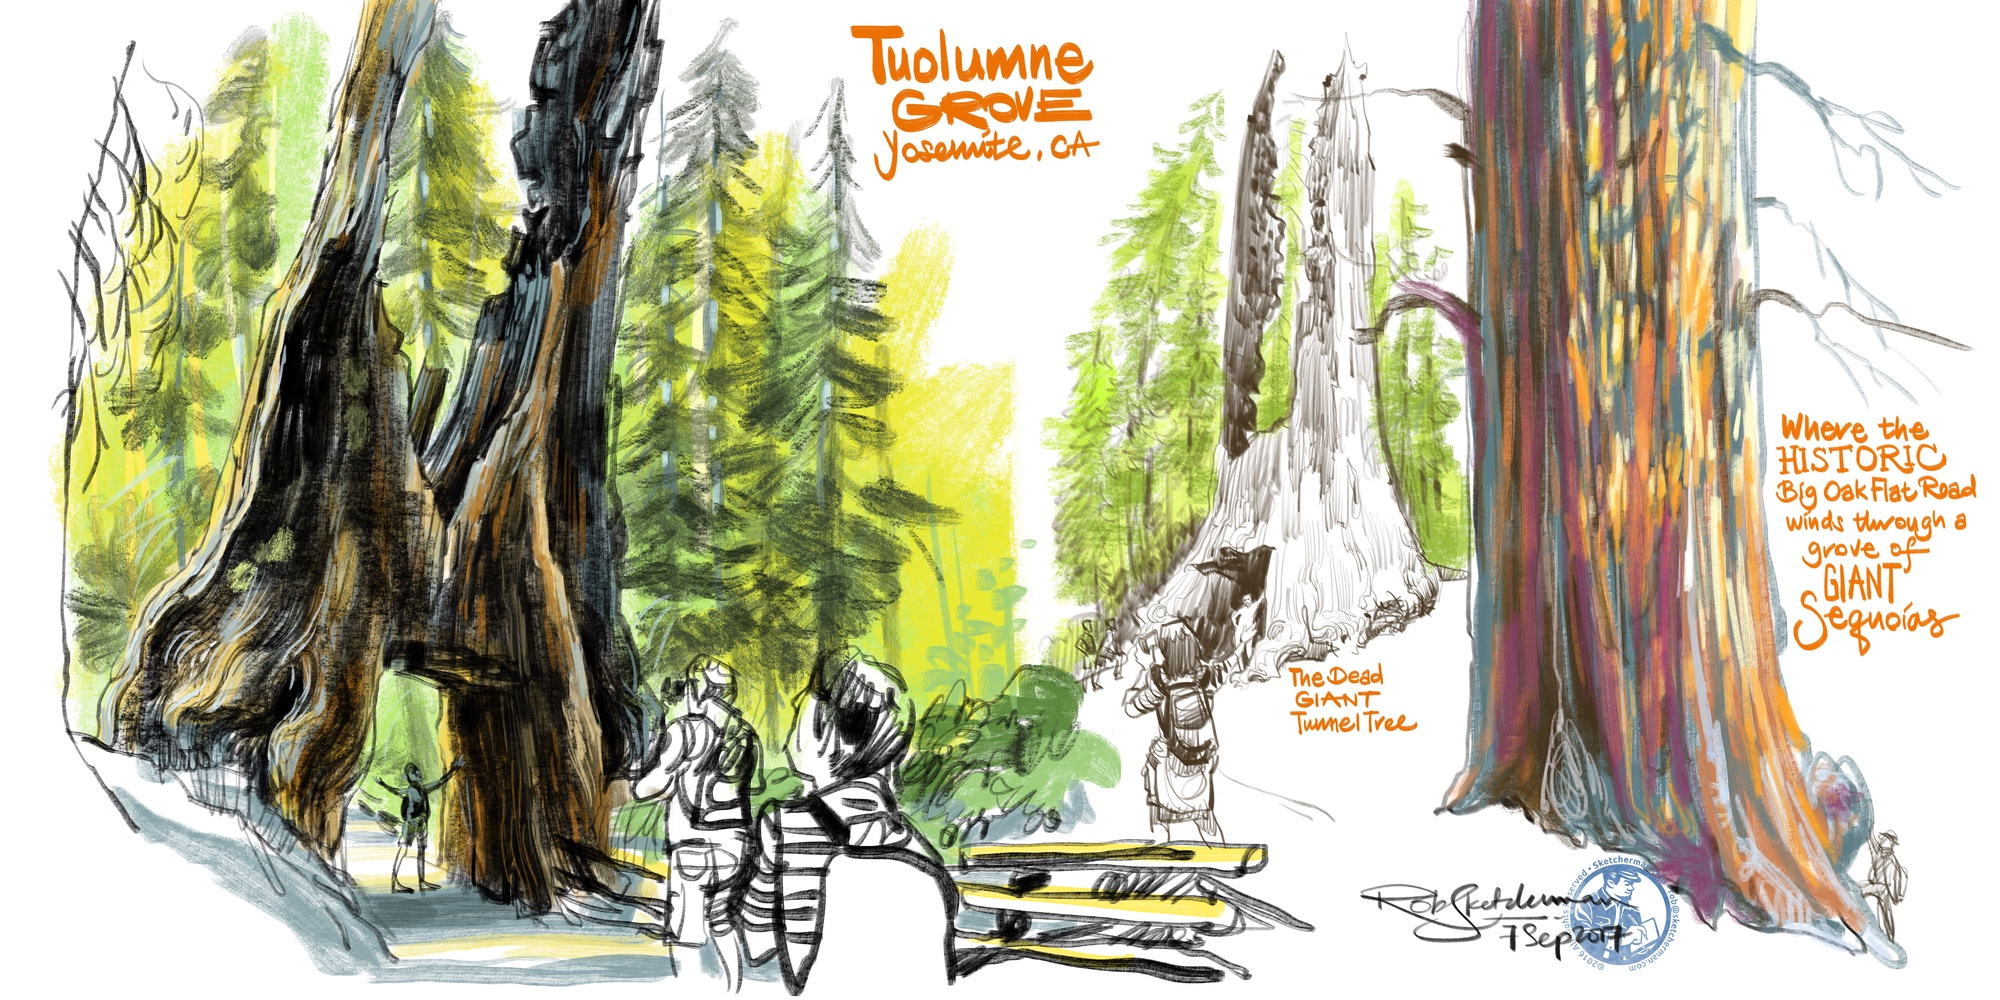 US_2017-Tuolumne Grove-Sequoia-Yosemite-Sketcherman.jpg